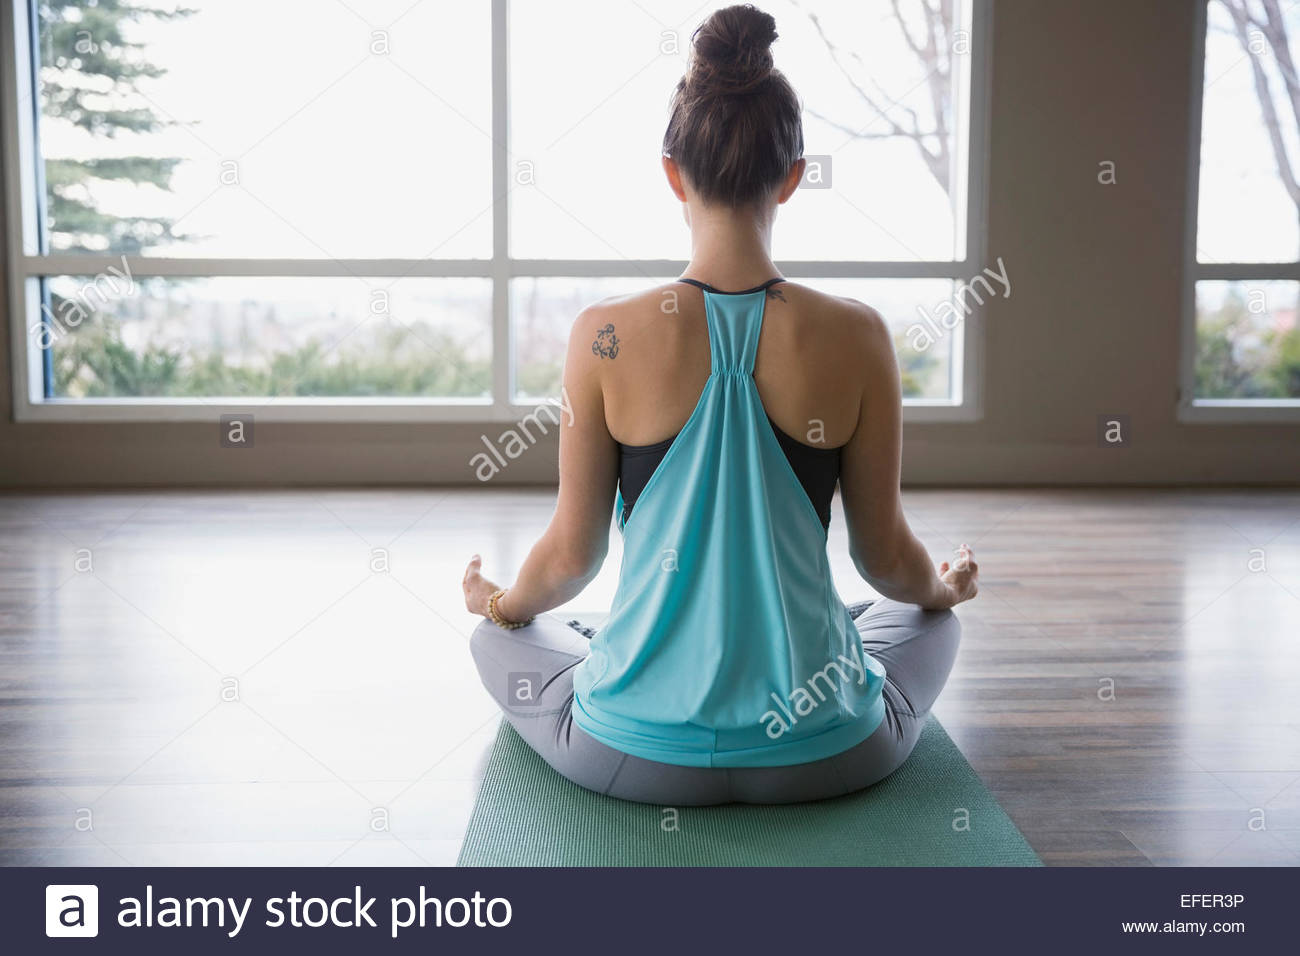 Rear view of woman meditating in lotus position - Stock Image